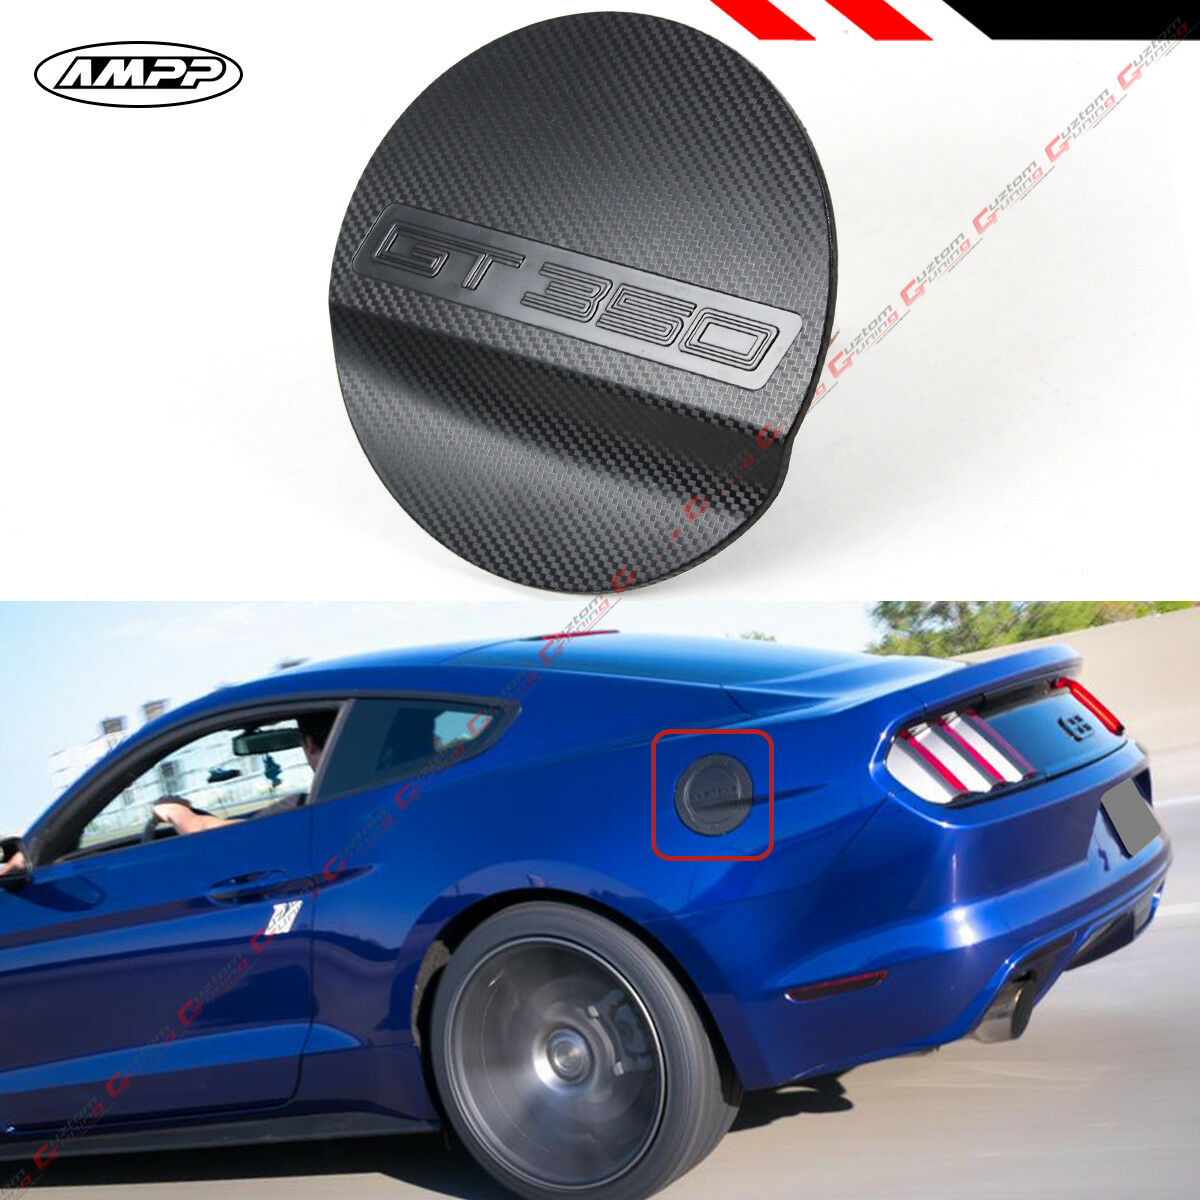 Carbon Fiber Fuel Lid Door 07 Accordfiber Wiring Diagram Database Mustang Fuse Box Cover For 15 17 Ford Gt350 Texture Add On Gas